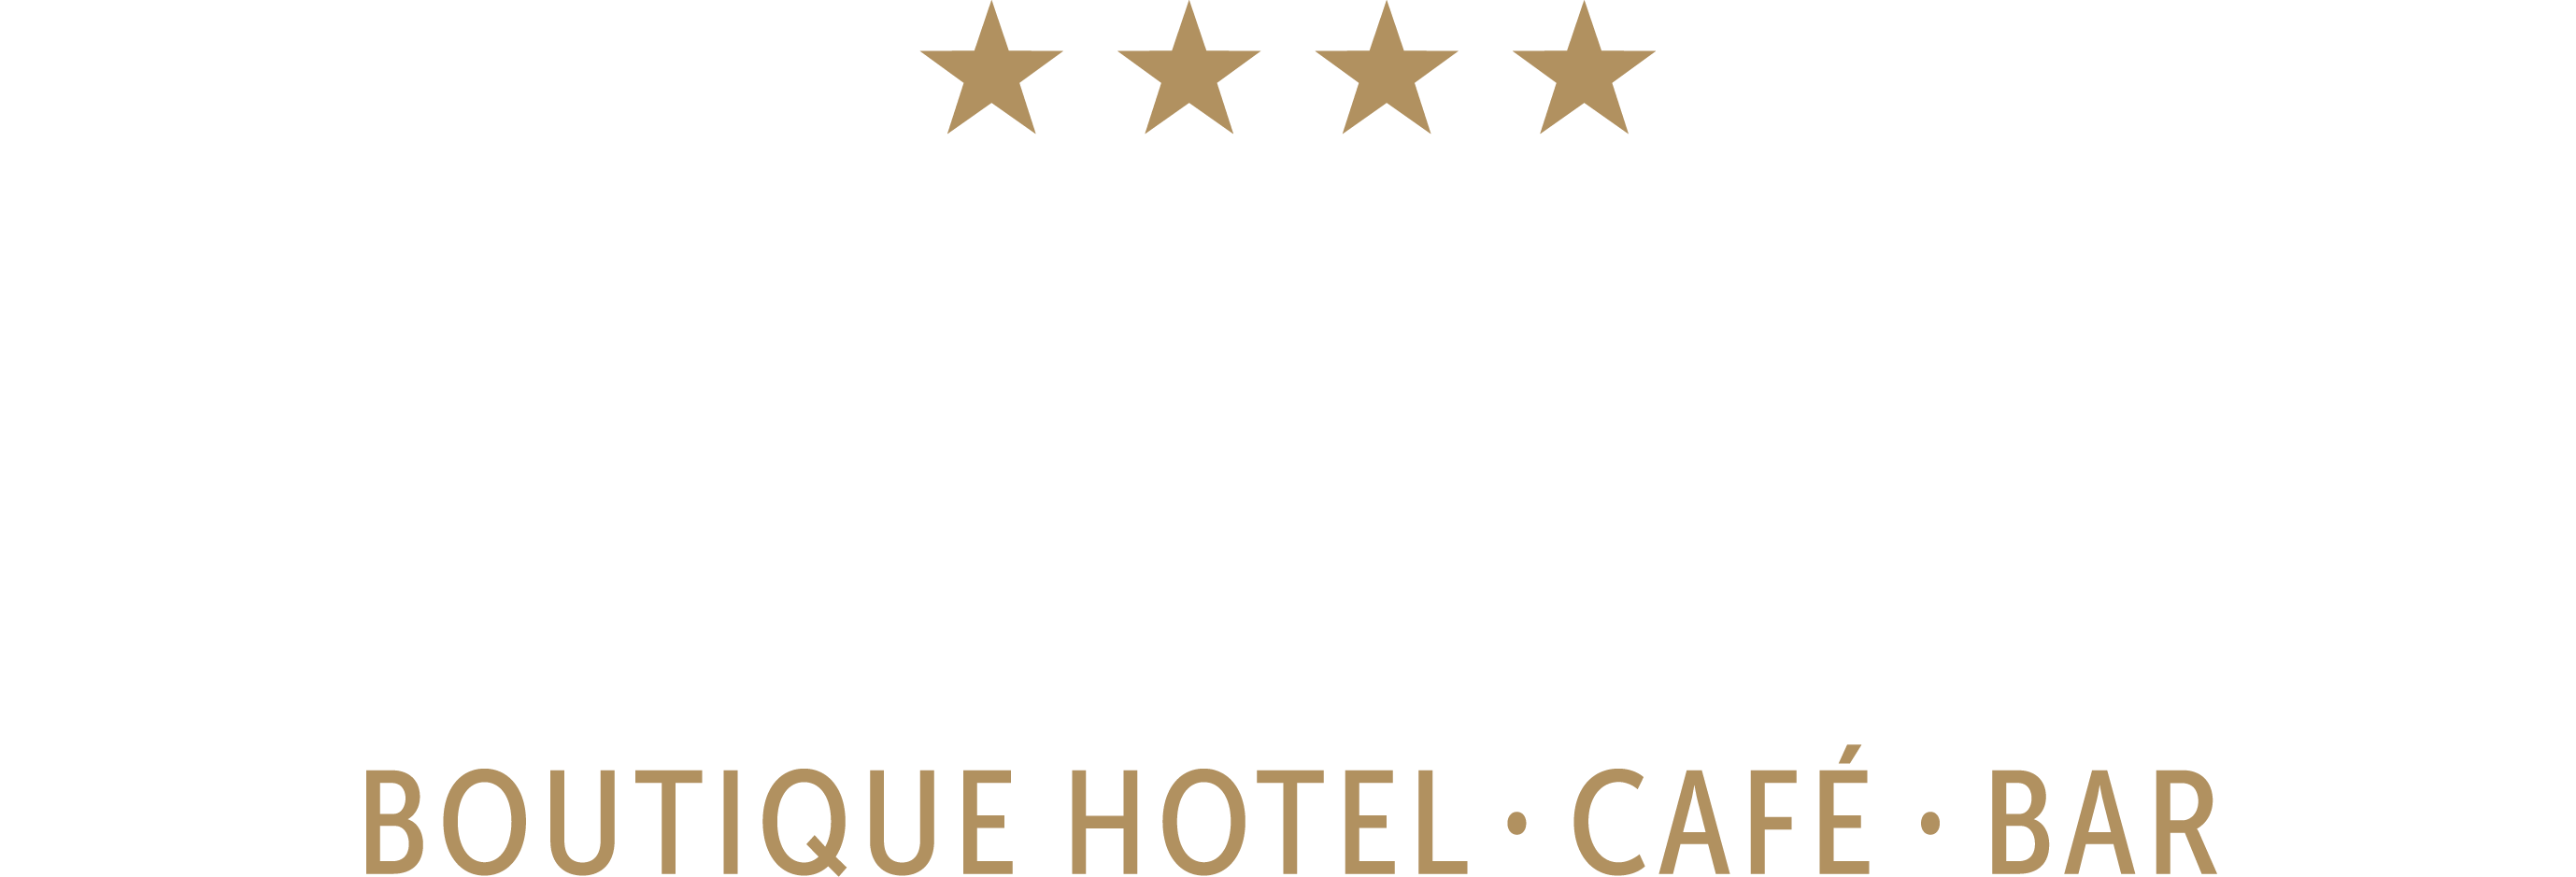 Boutique Hotel Belle Epoque